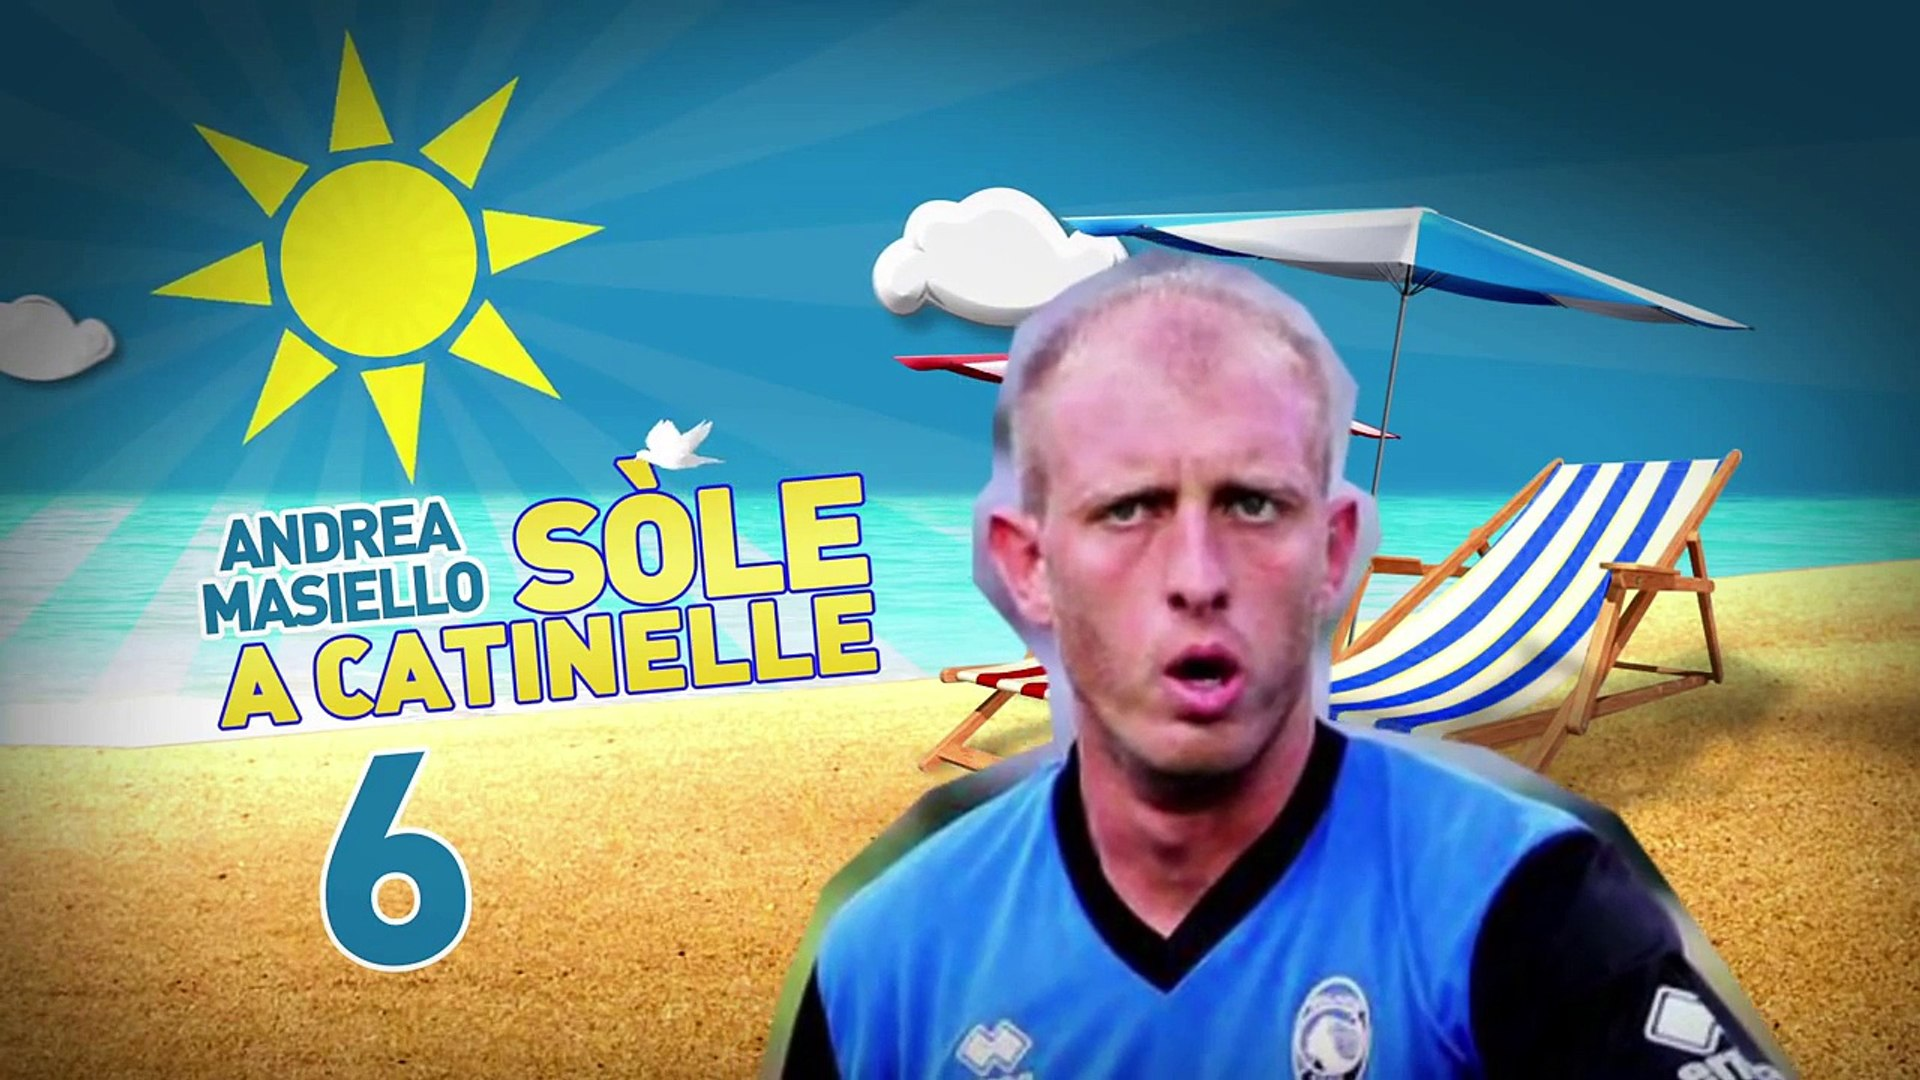 Sole A Catinelle Film Completo Ita Dailymotion Video